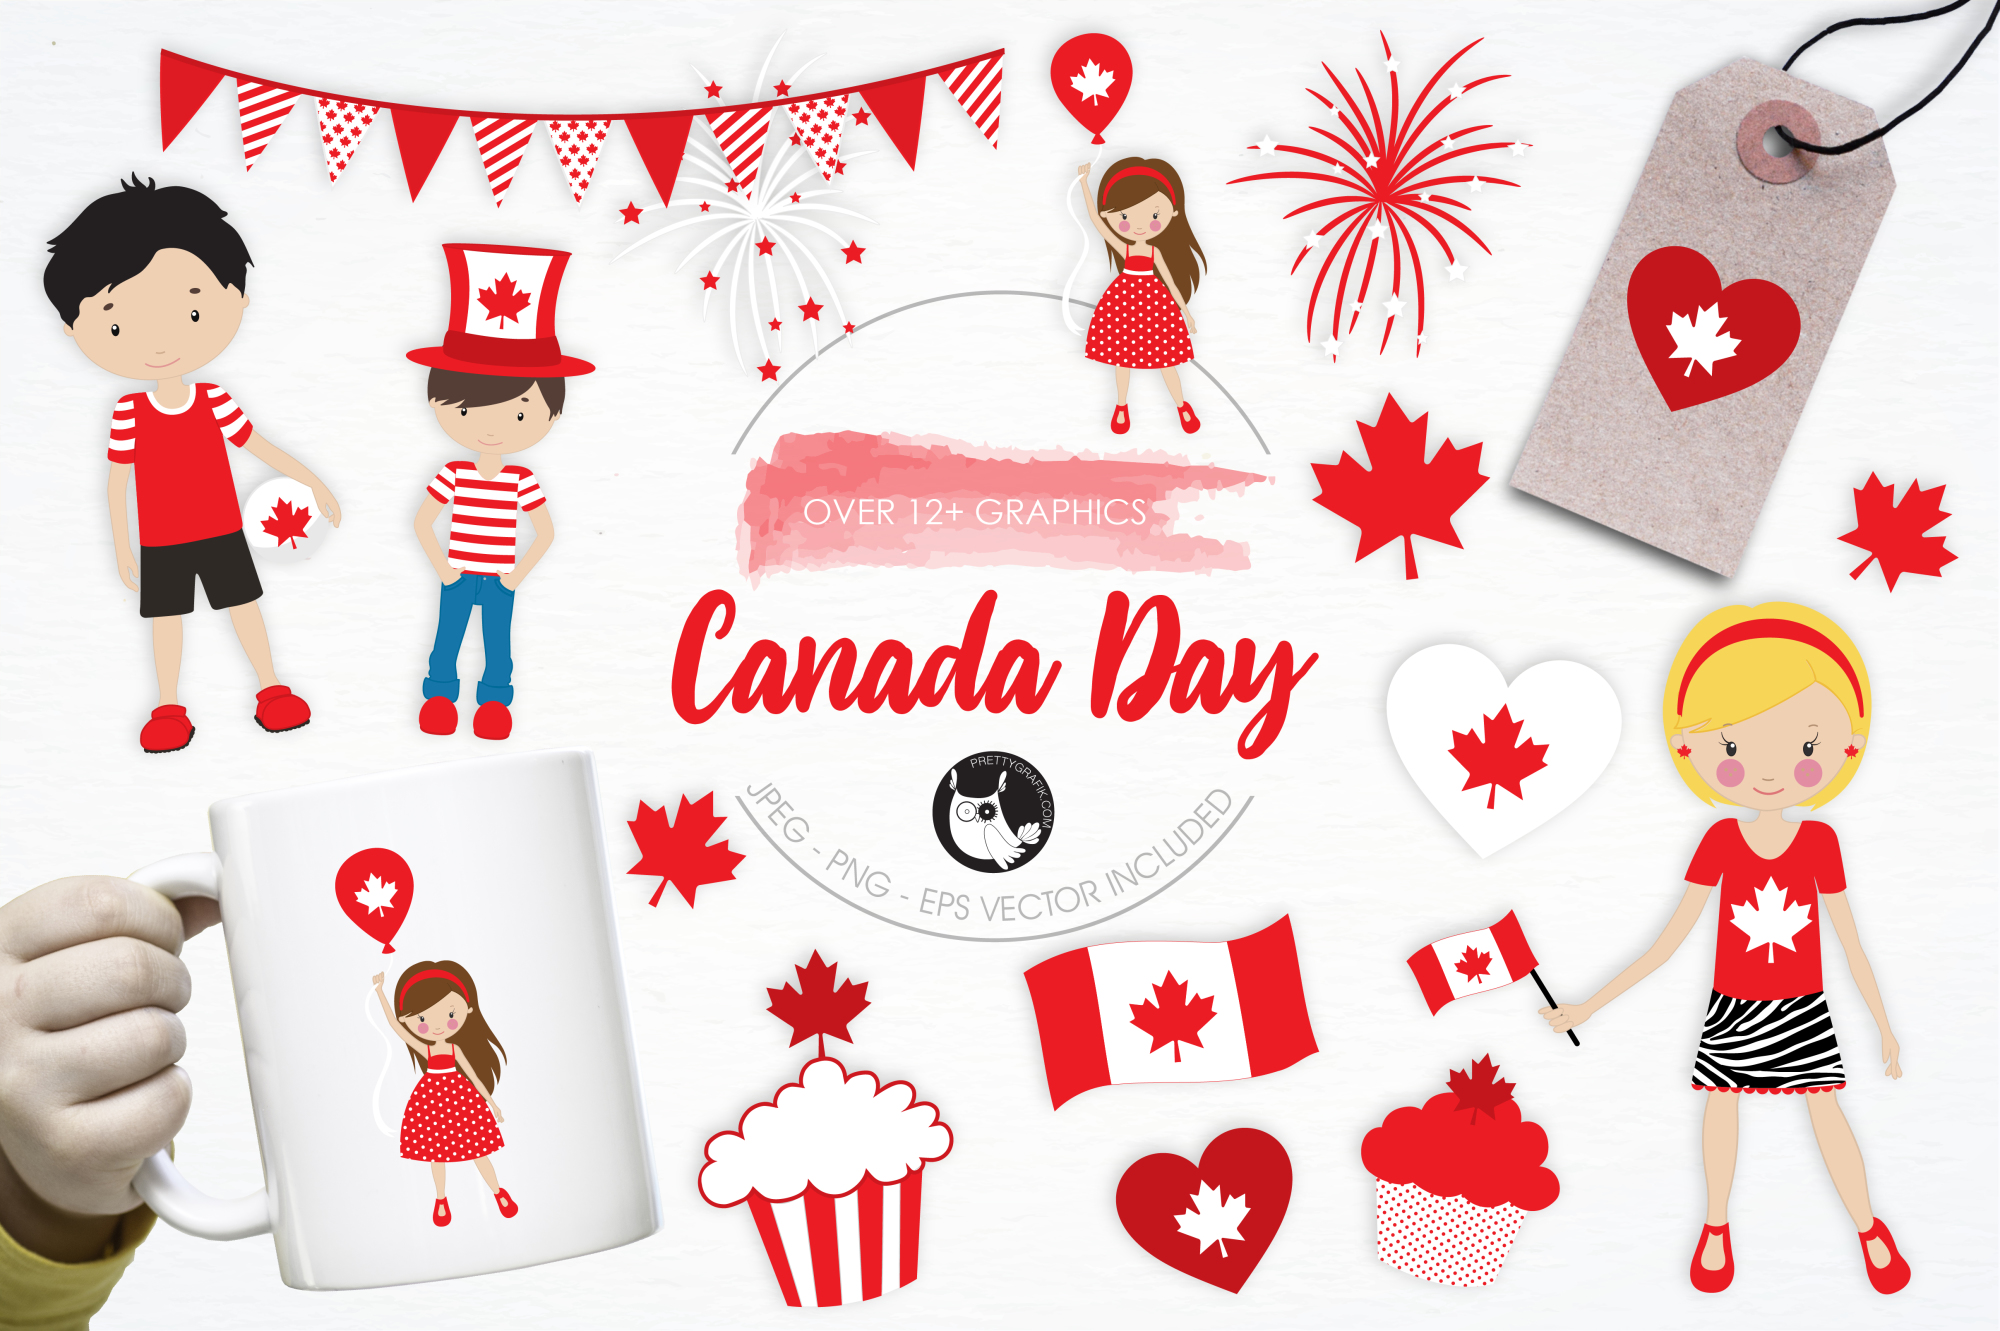 Canada Day graphics and illustrations example image 1